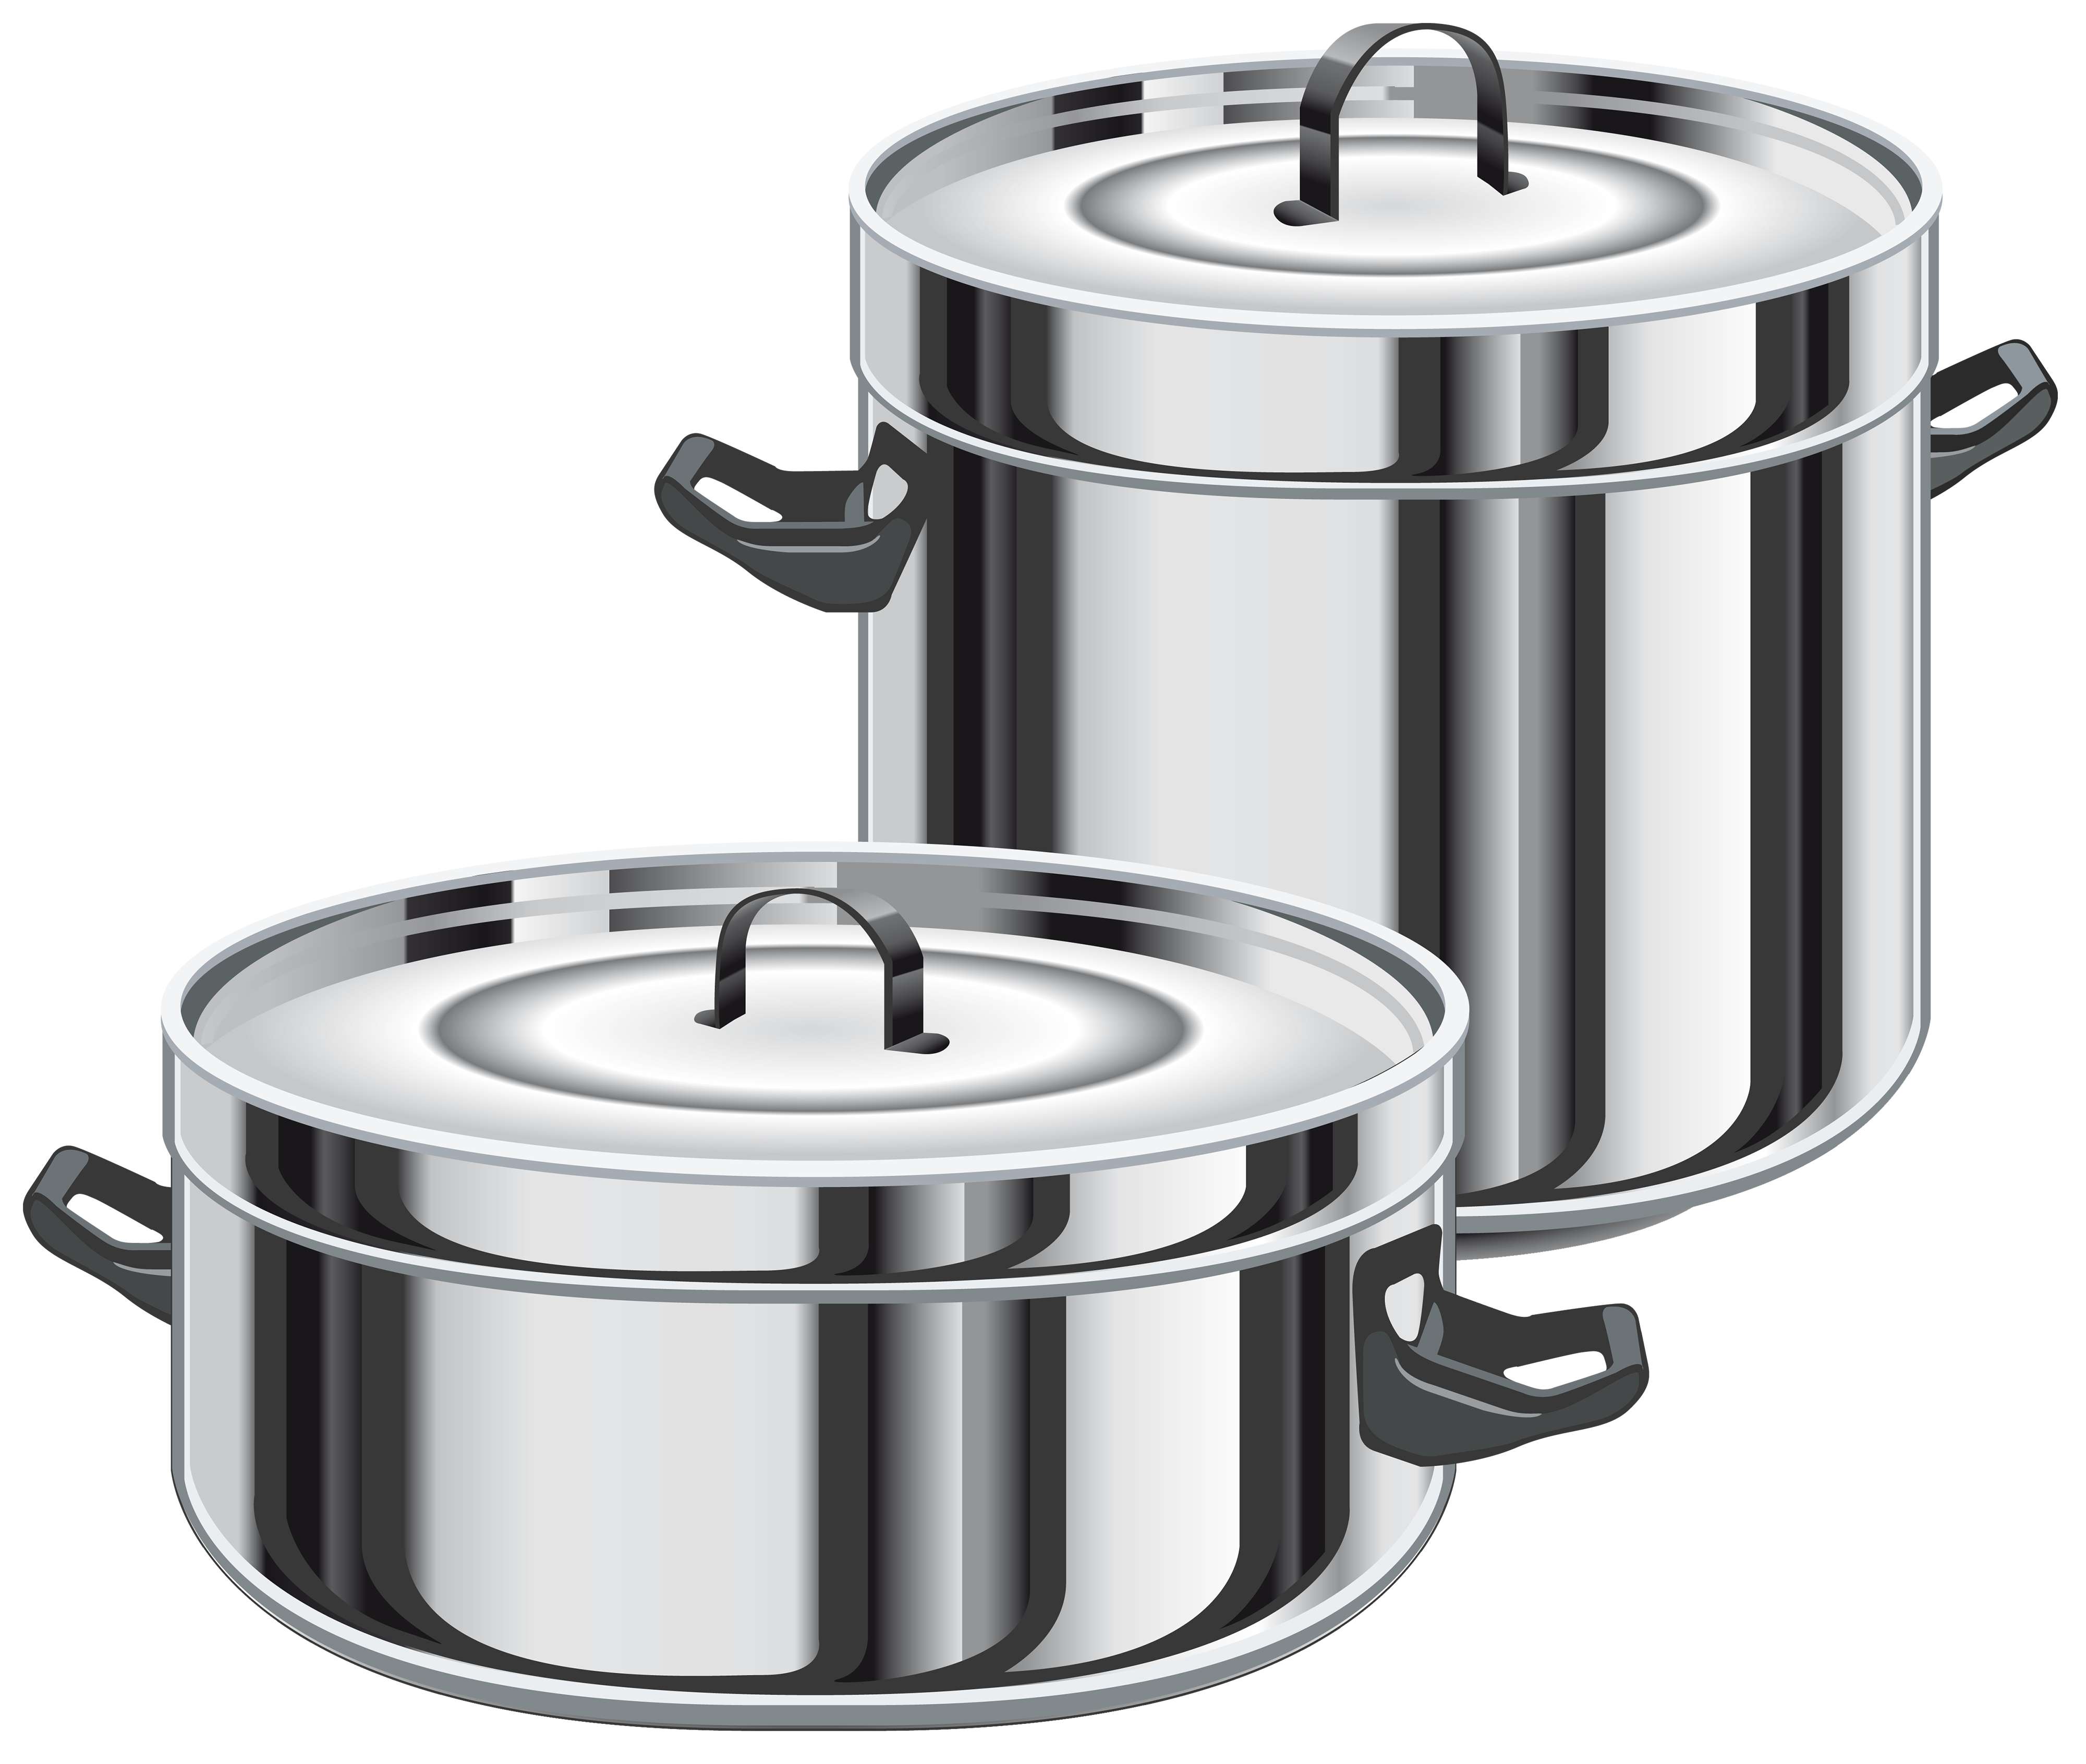 Free printable blackline clipart of a pot lid picture freeuse download Cooking Pots PNG Clipart - Best WEB Clipart picture freeuse download